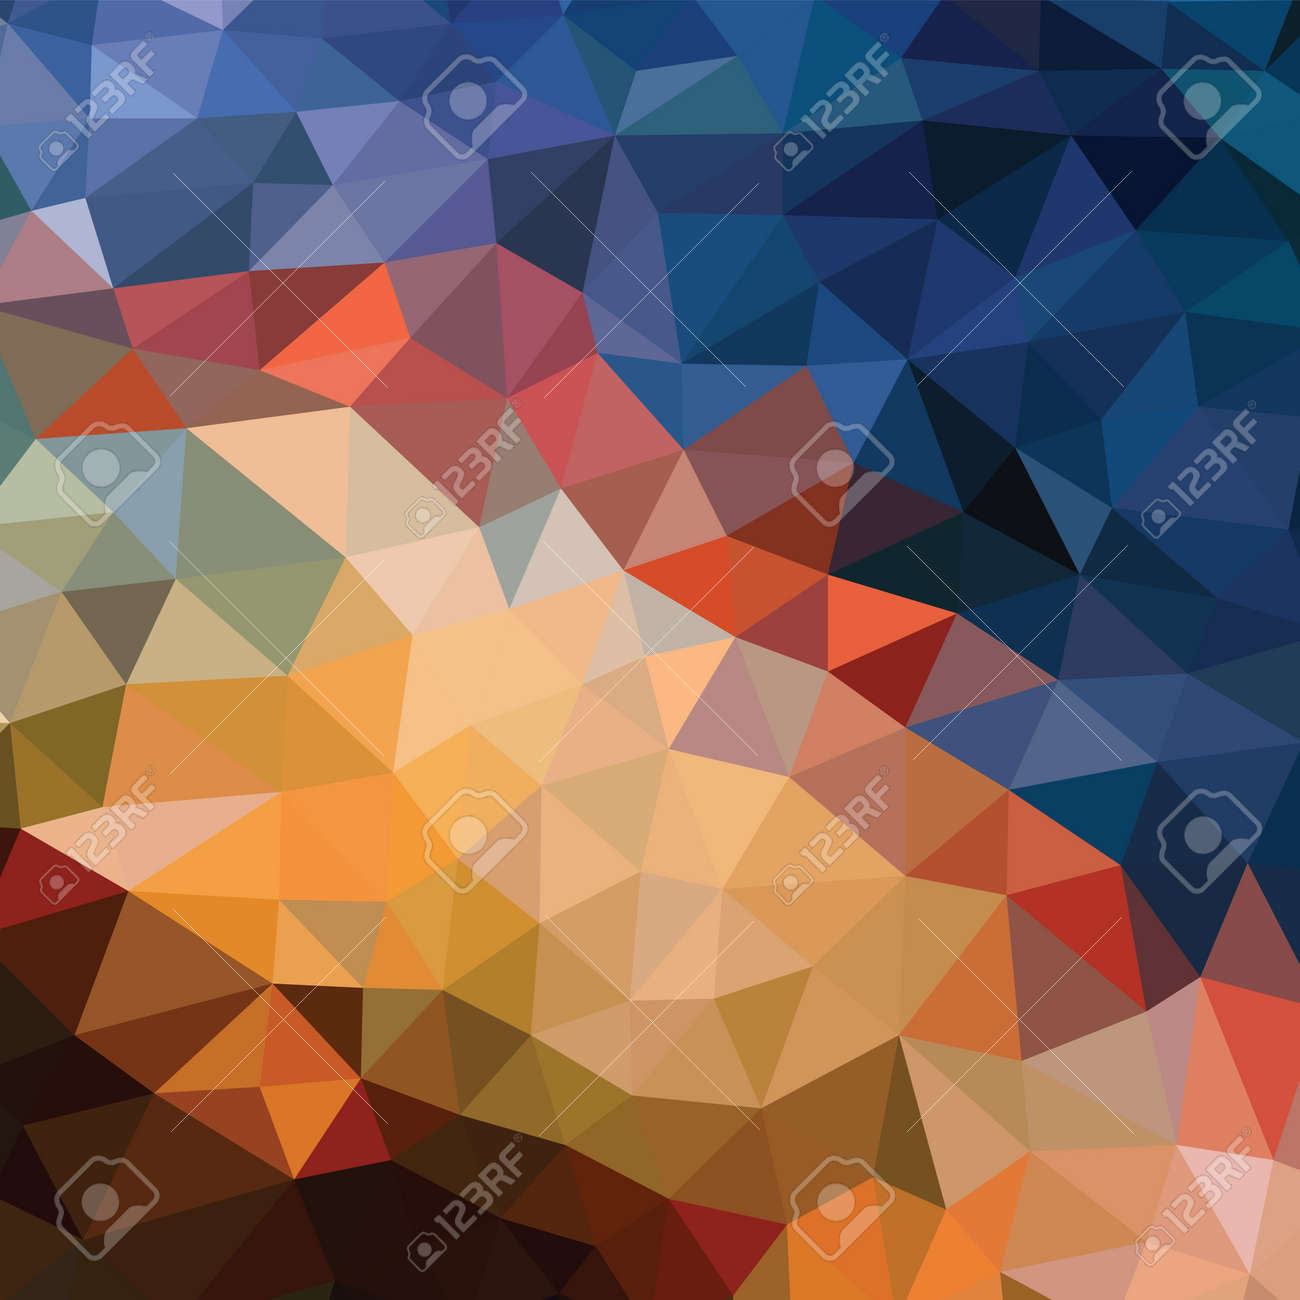 Polygonal abstract background - vector pattern in orange, brown, beige, blue colors. Geometric backdrop. Web site wallpaper. - 128889045